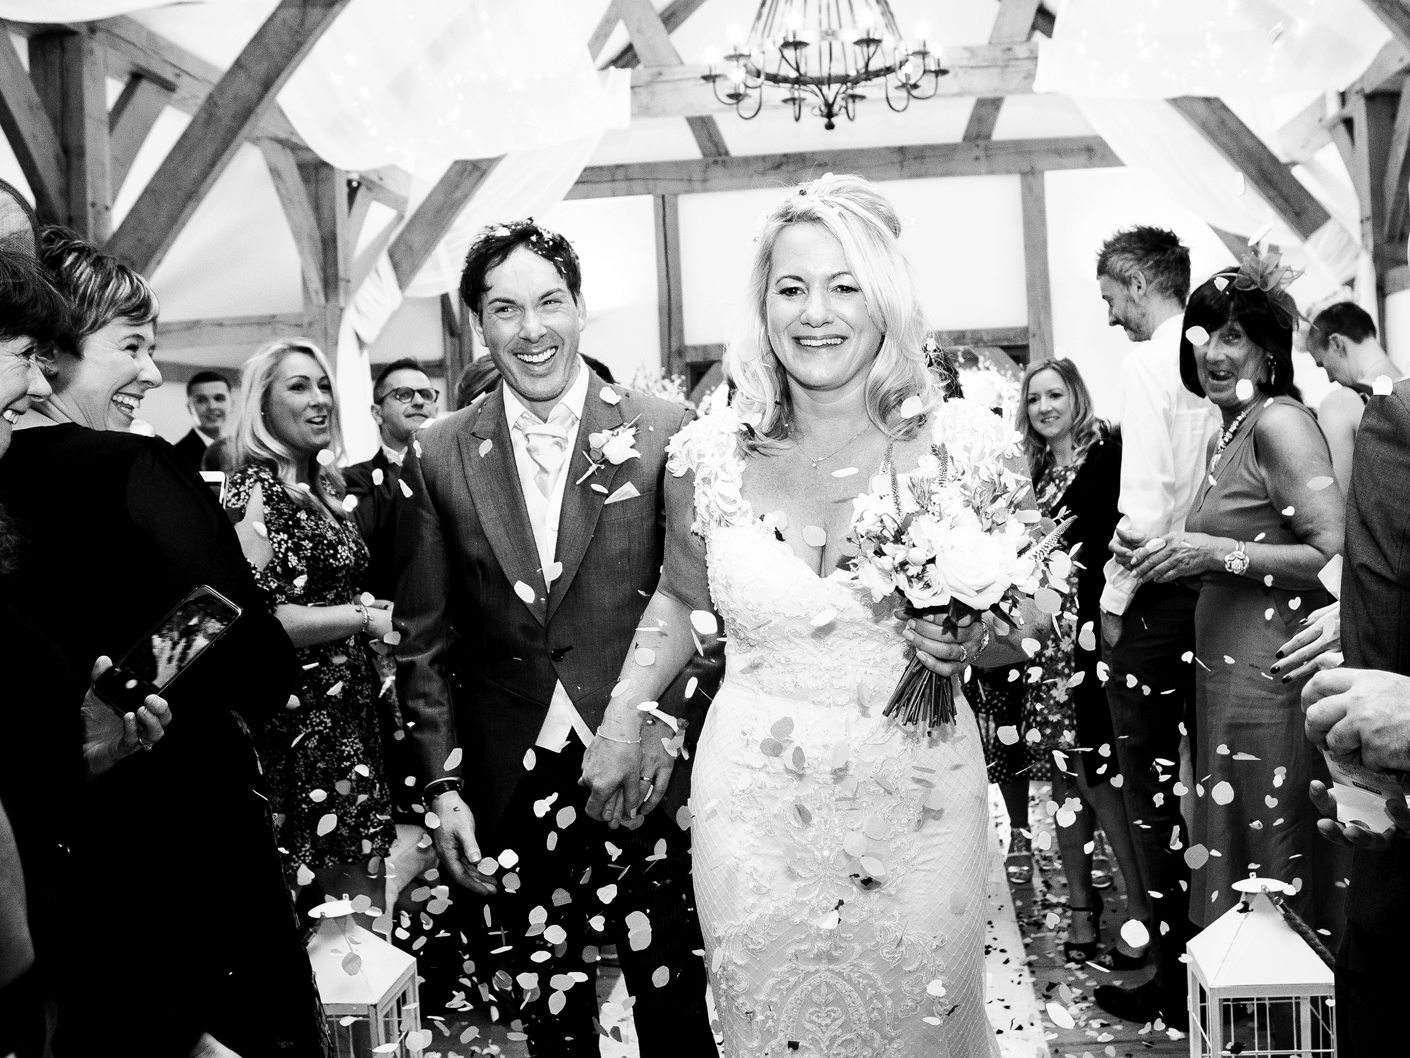 wedding-photography-of-the-bride-and-groom-with-confetti-at-sandhole-oak-barn-cheshire